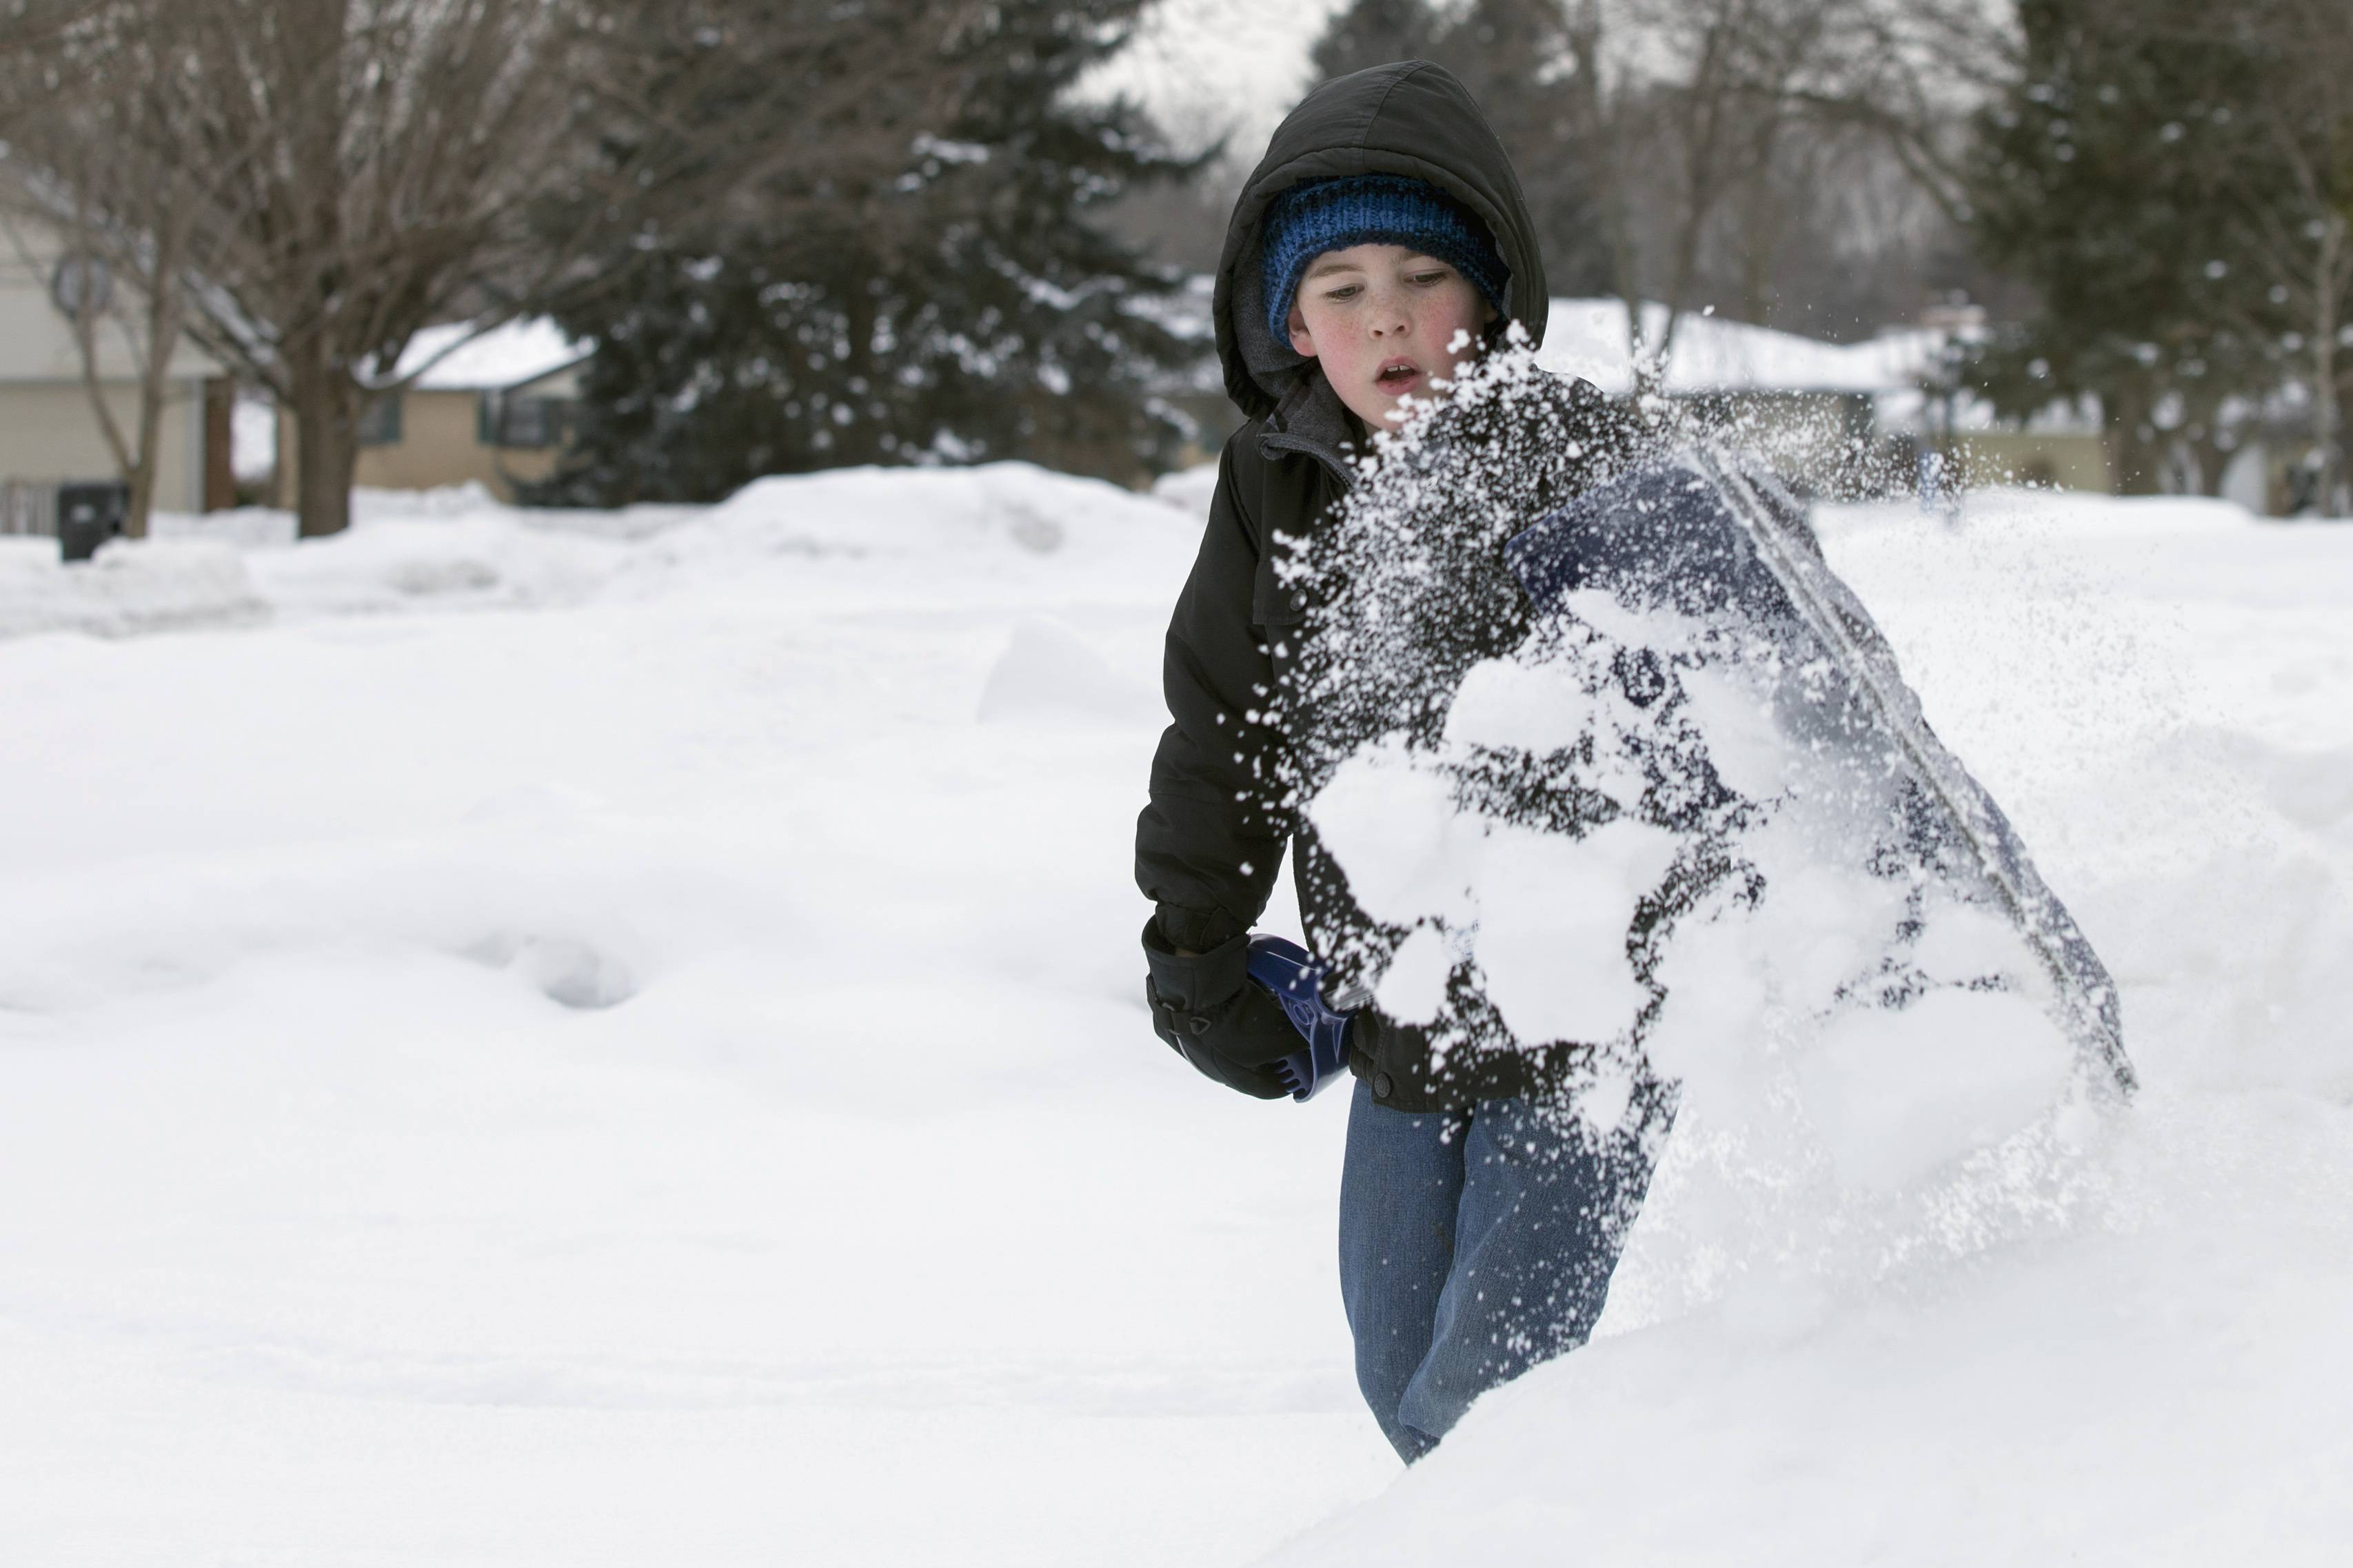 In this Feb. 12, 2014 photo, Cam Russo, 8, shovels a driveway in his neighborhood in Rockford, Ill. Russo's class was given shovels and gloves and are trying to collectively shovel 100 driveways by the end of Feb. This makes for Russo's 11th.